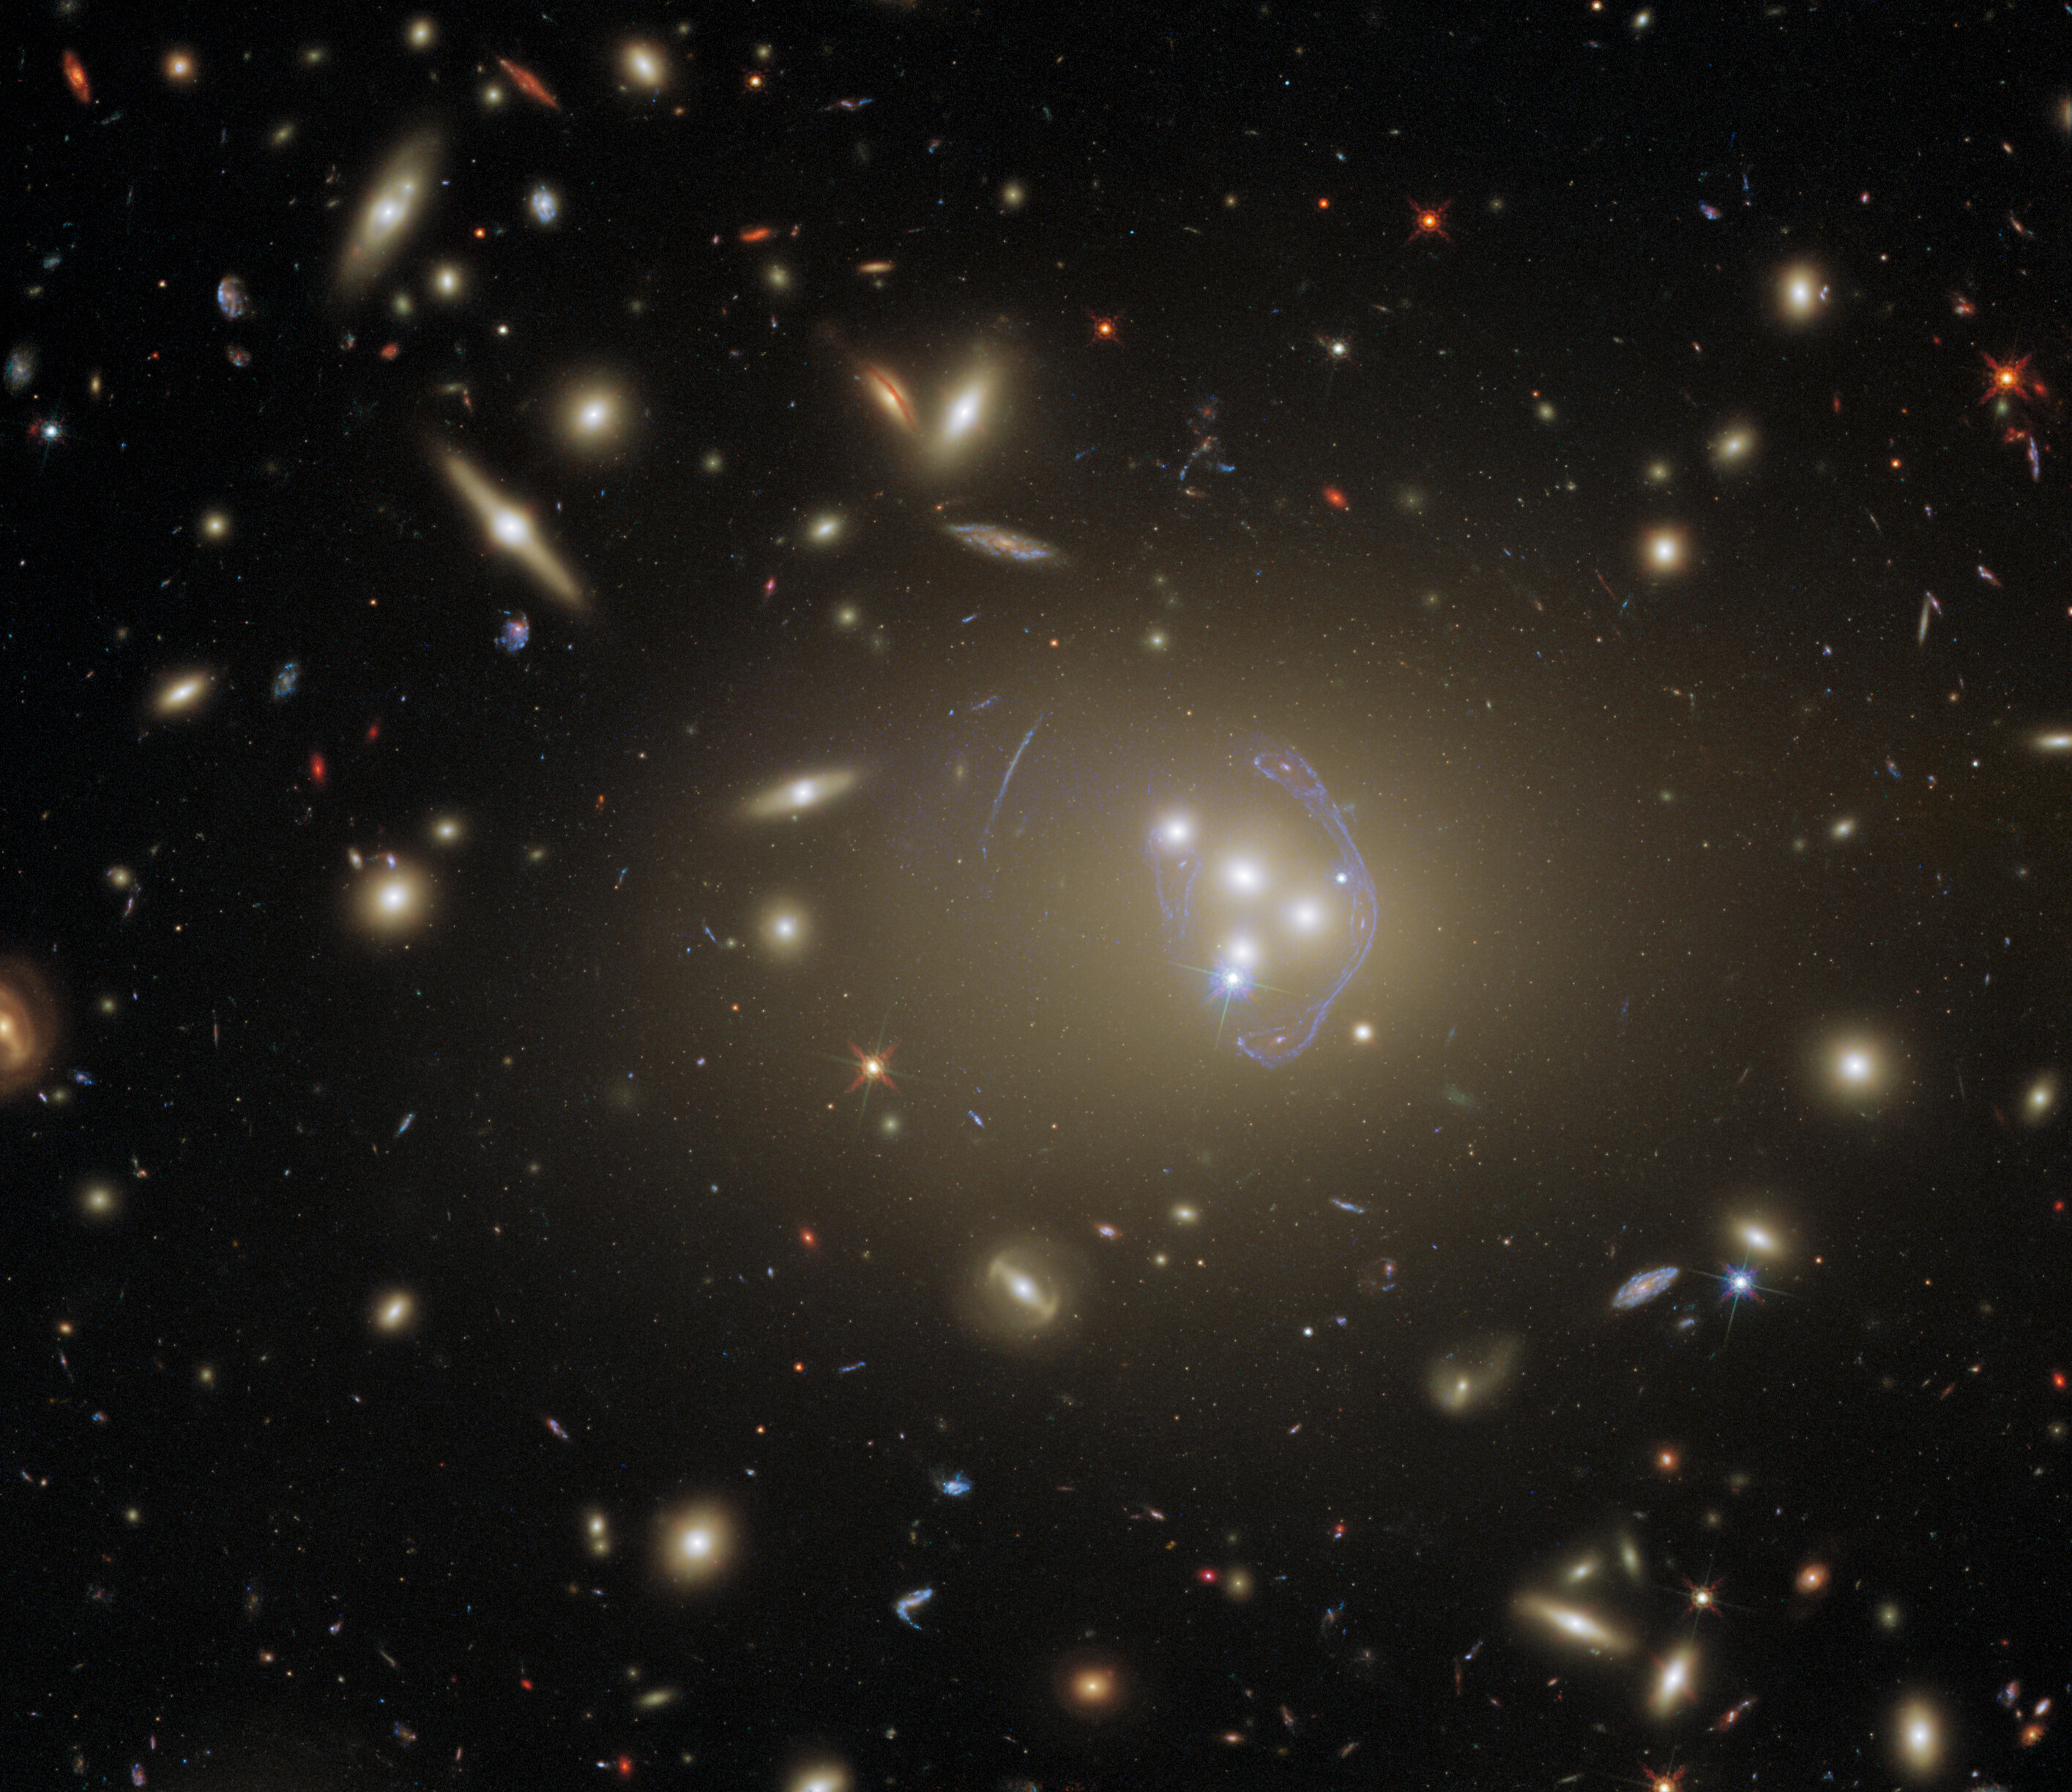 Hubble Gazes at a Cluster Full of Cosmic Clues